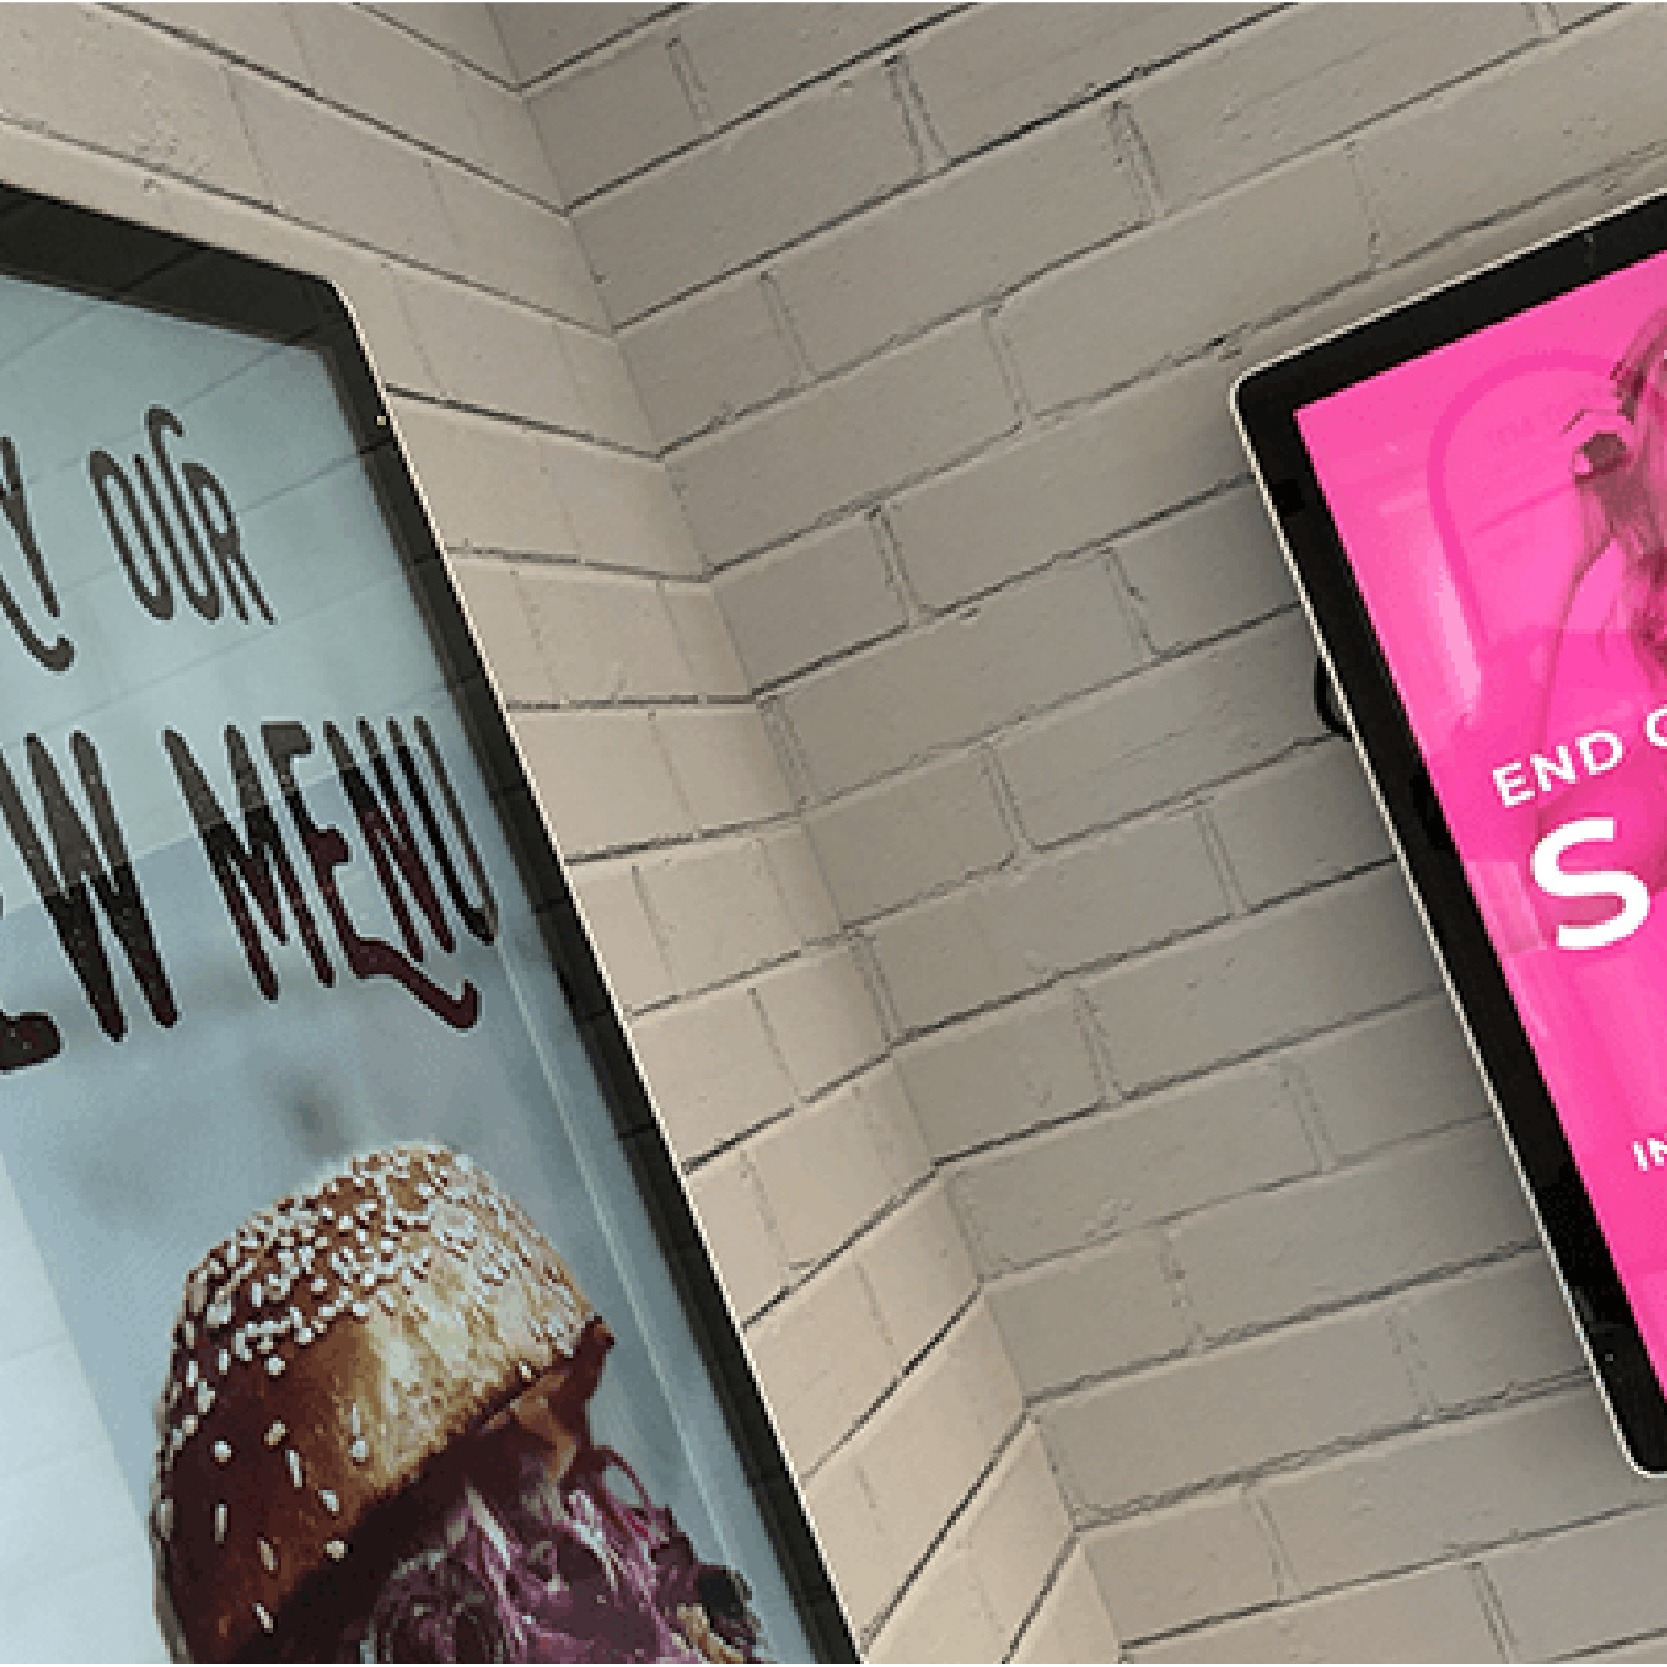 Digital Signage: Five reasons why it's time you upgrade